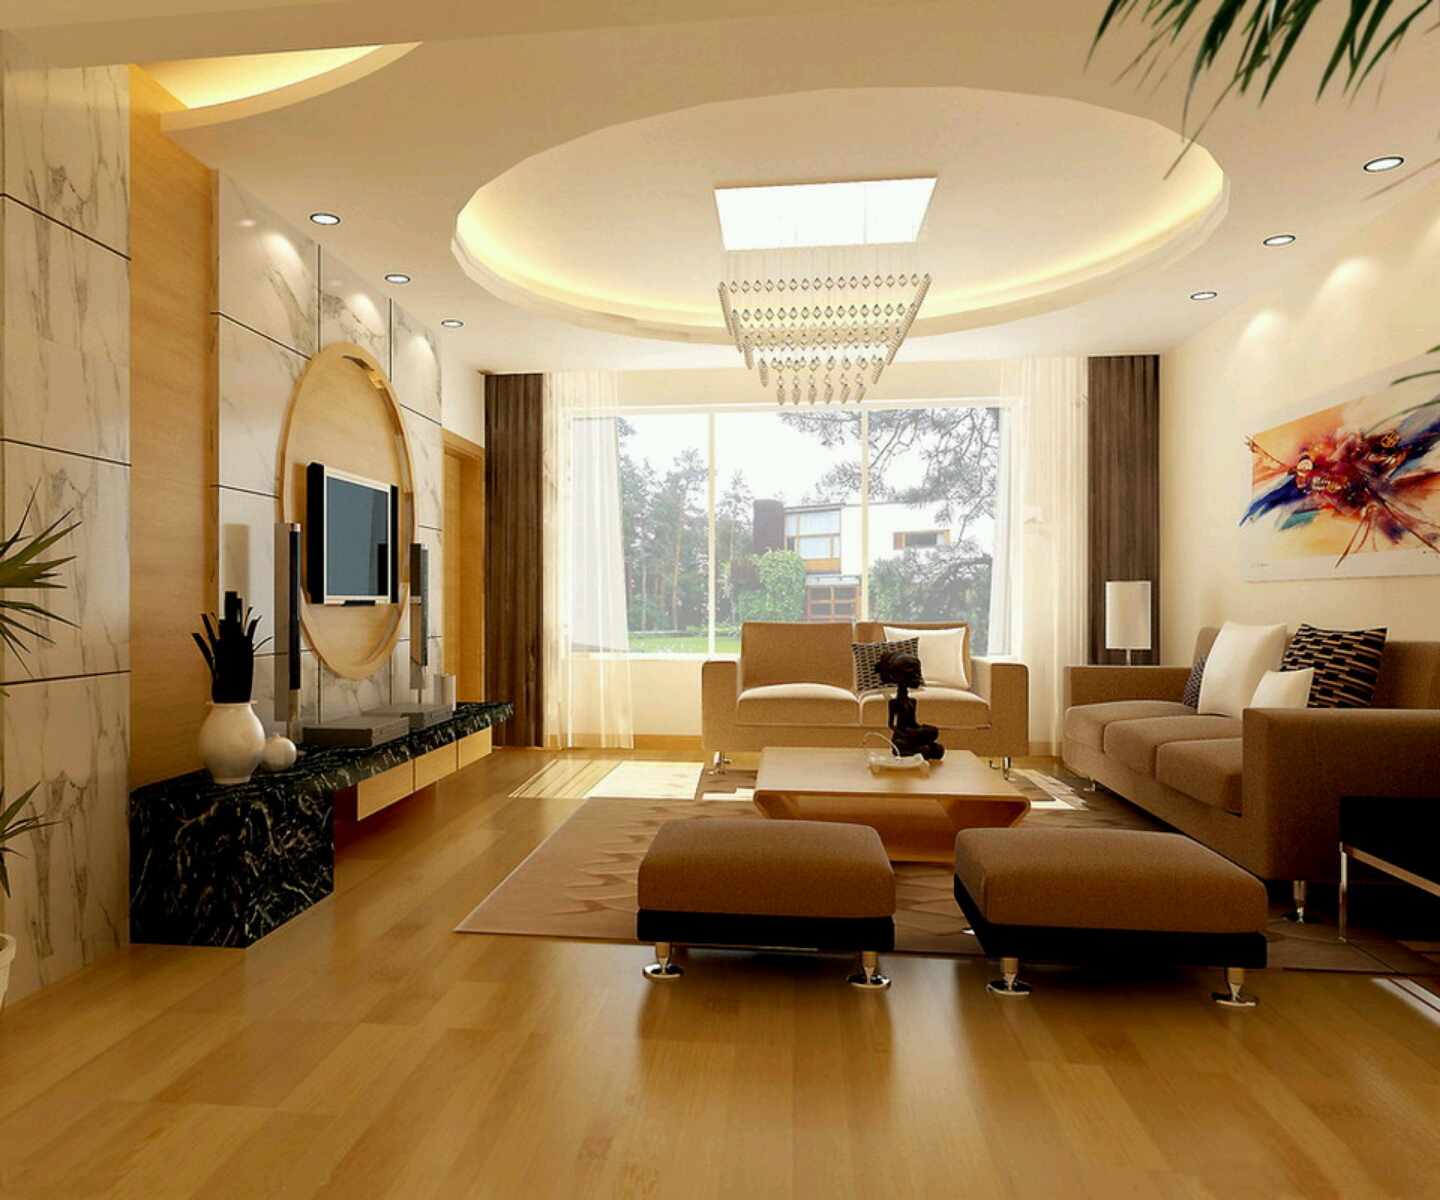 Modern interior decoration living rooms ceiling designs for Latest interior design ideas